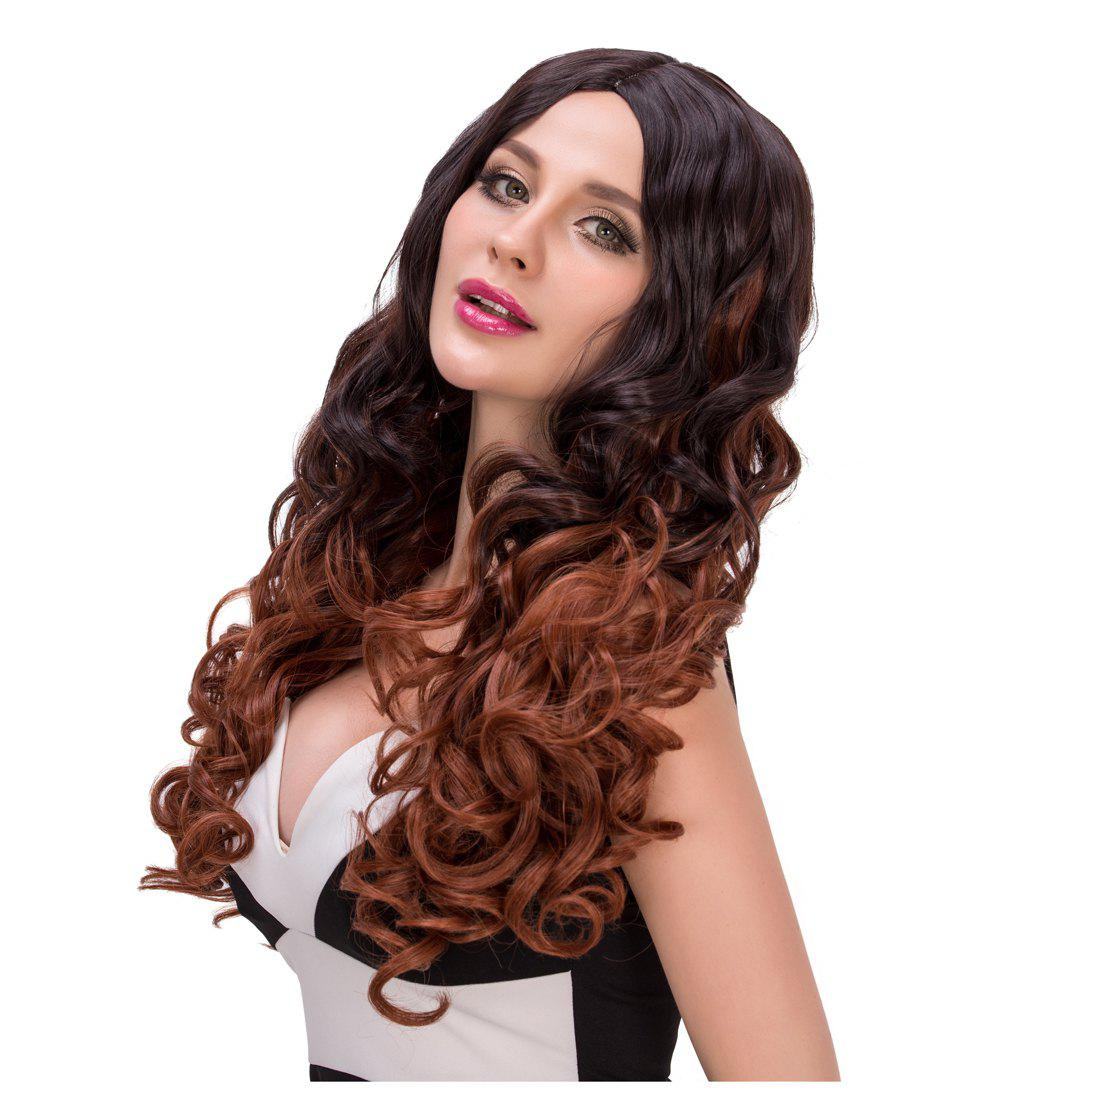 Stylish Women's Long Curly Middle Part Mixed Color Synthetic Hair Wig